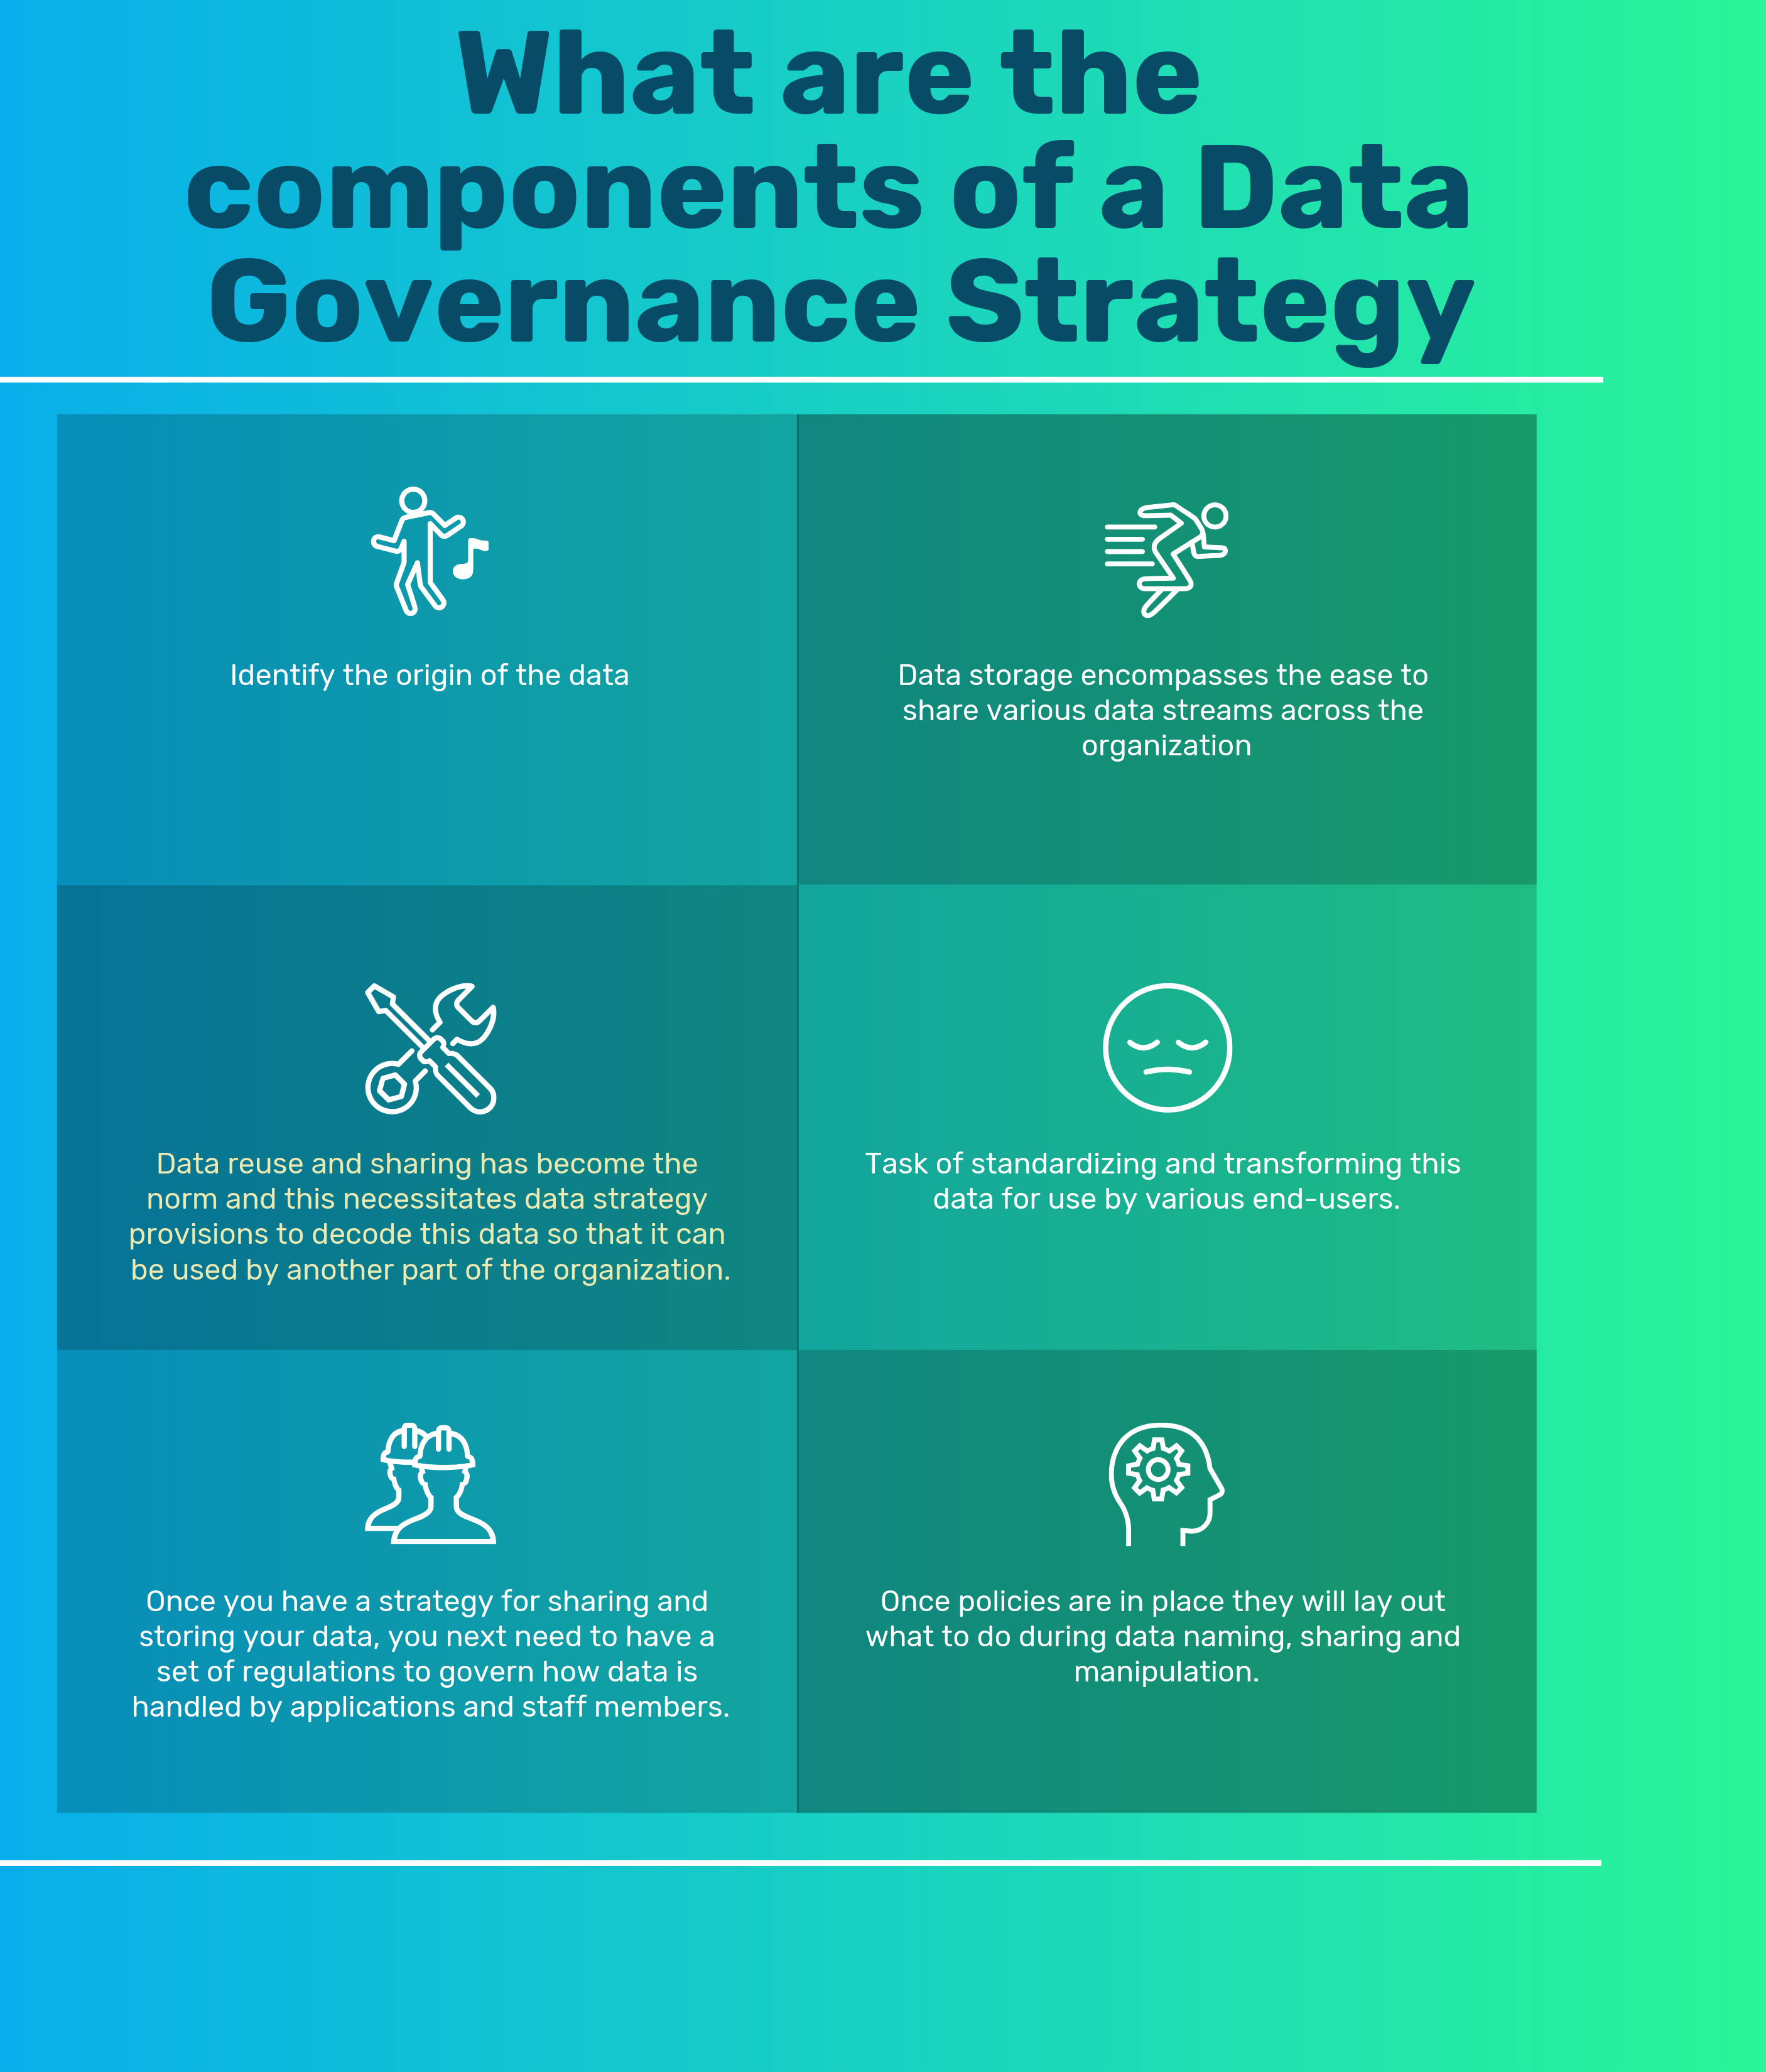 What are the components of a Data Governance Strategy